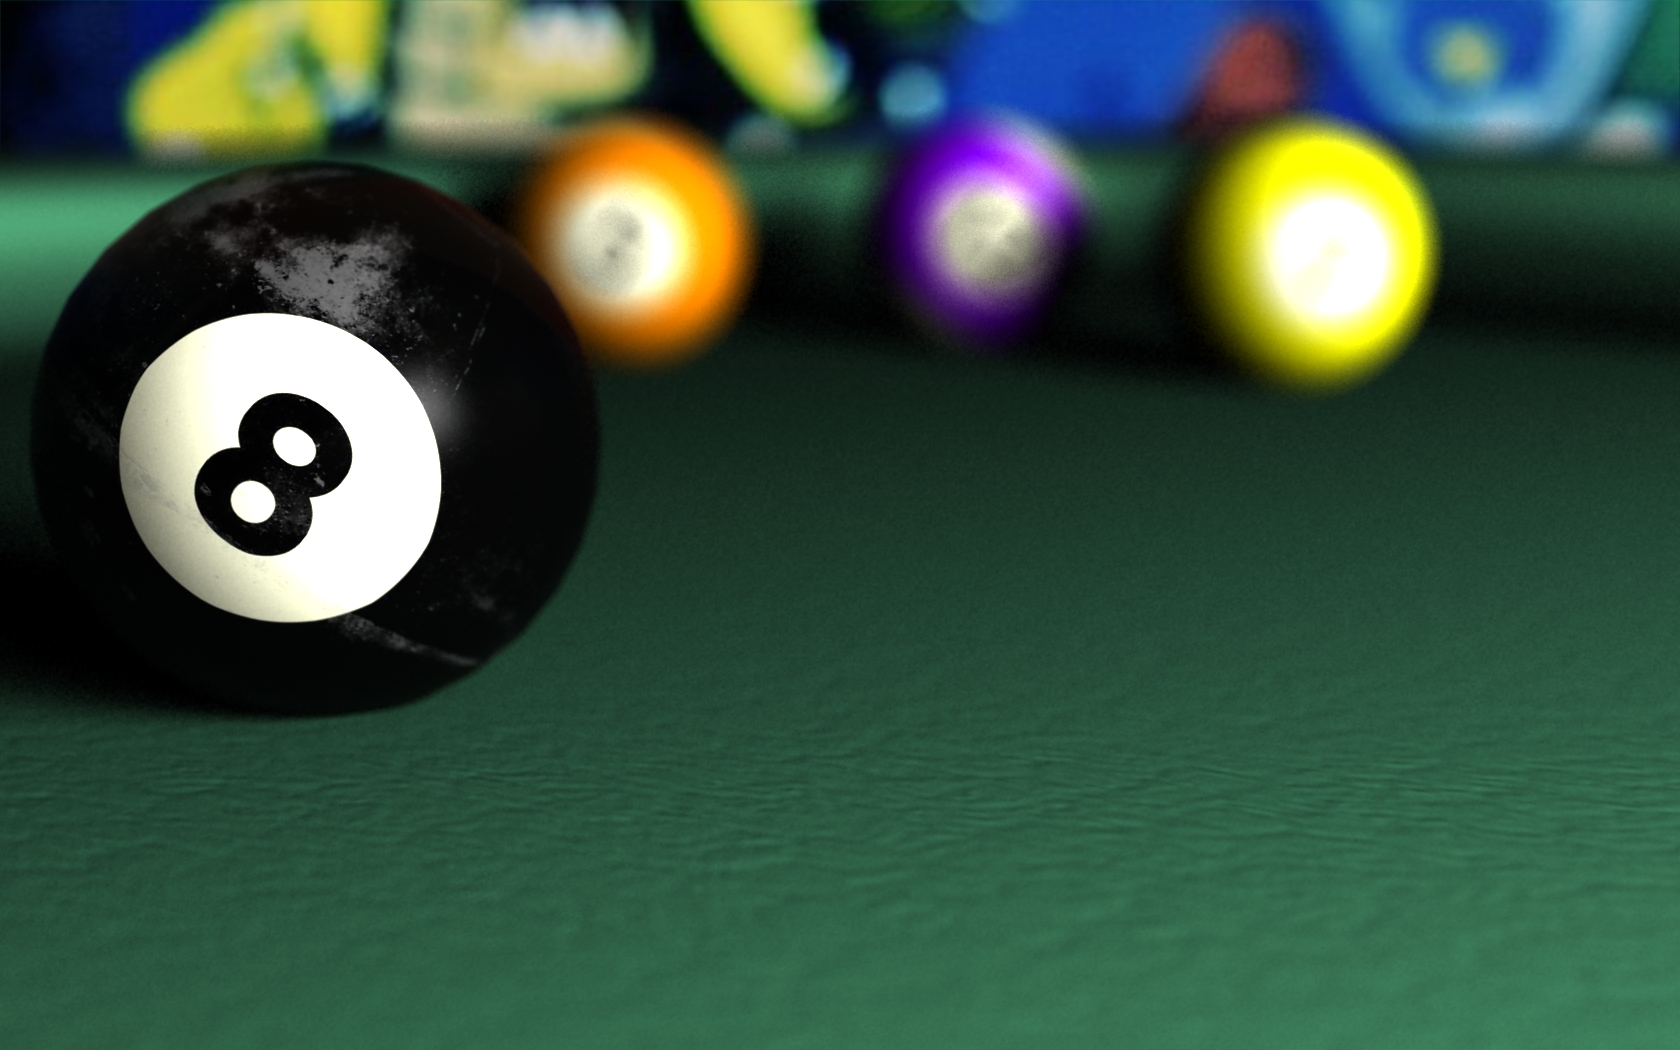 Billiards Billiards pool wallpaper